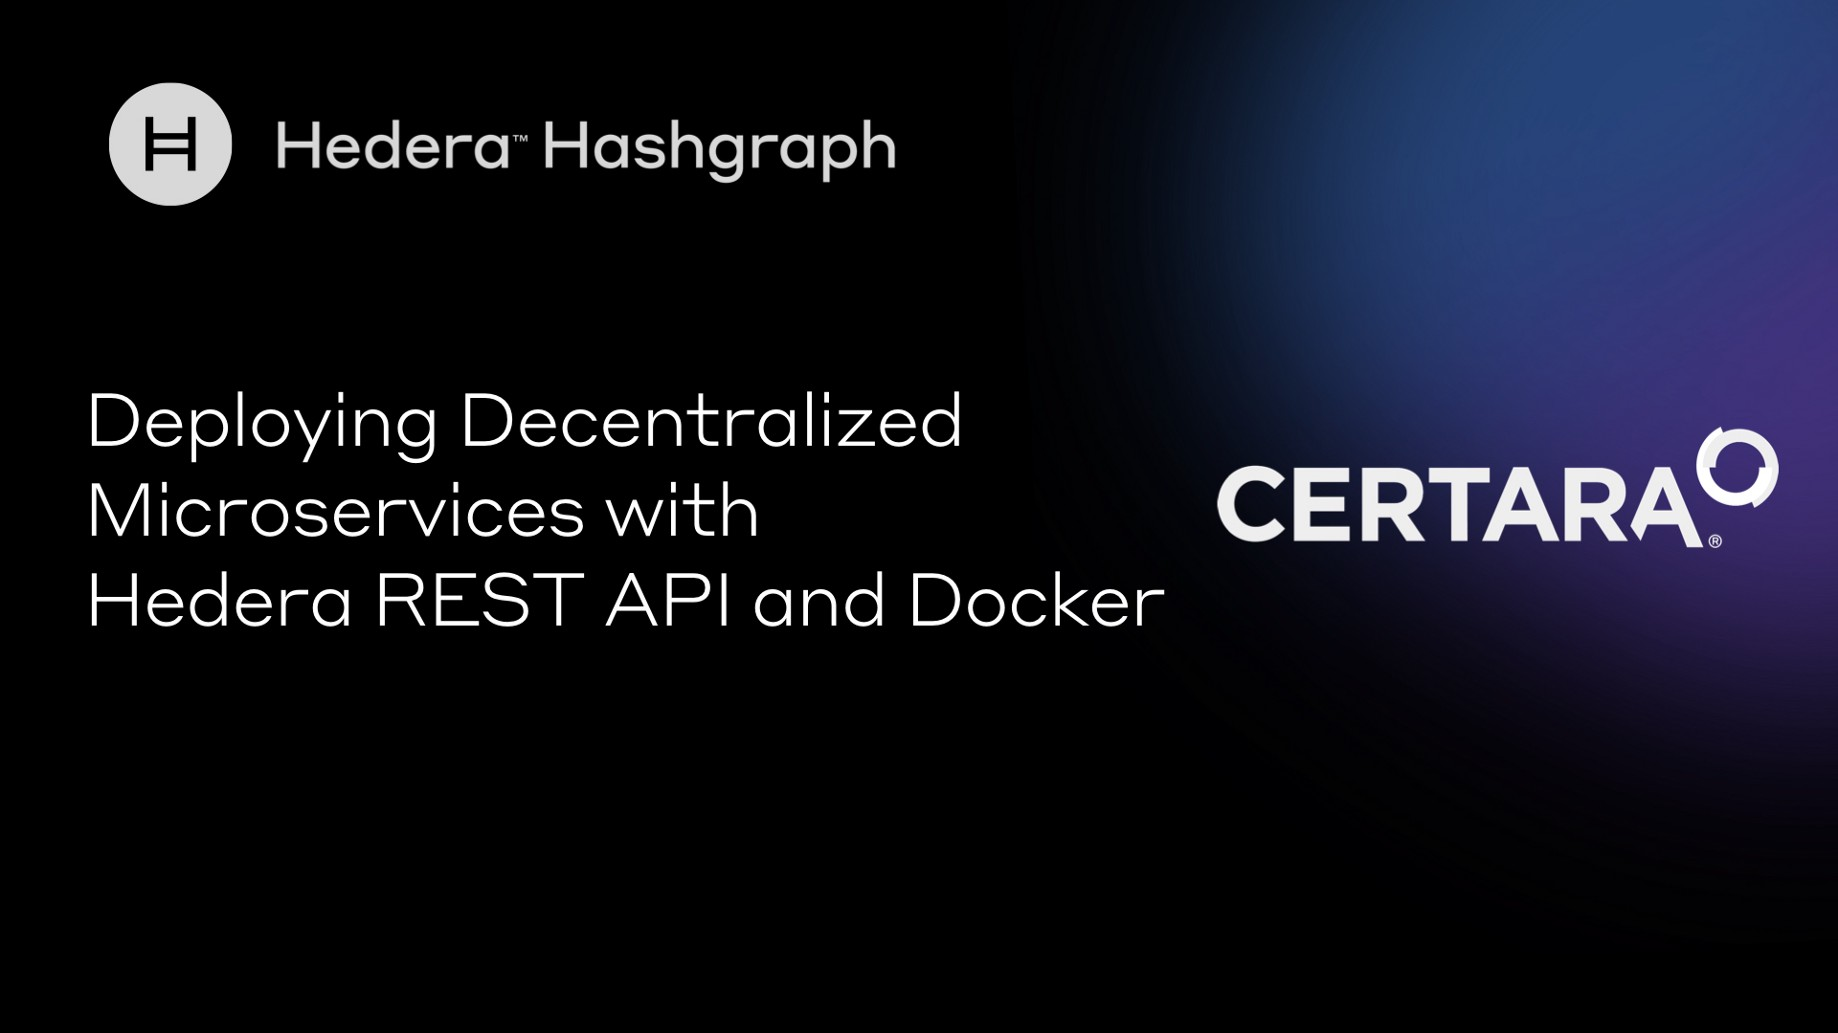 Deploying Decentralized Microservices at Certara with Hedera REST